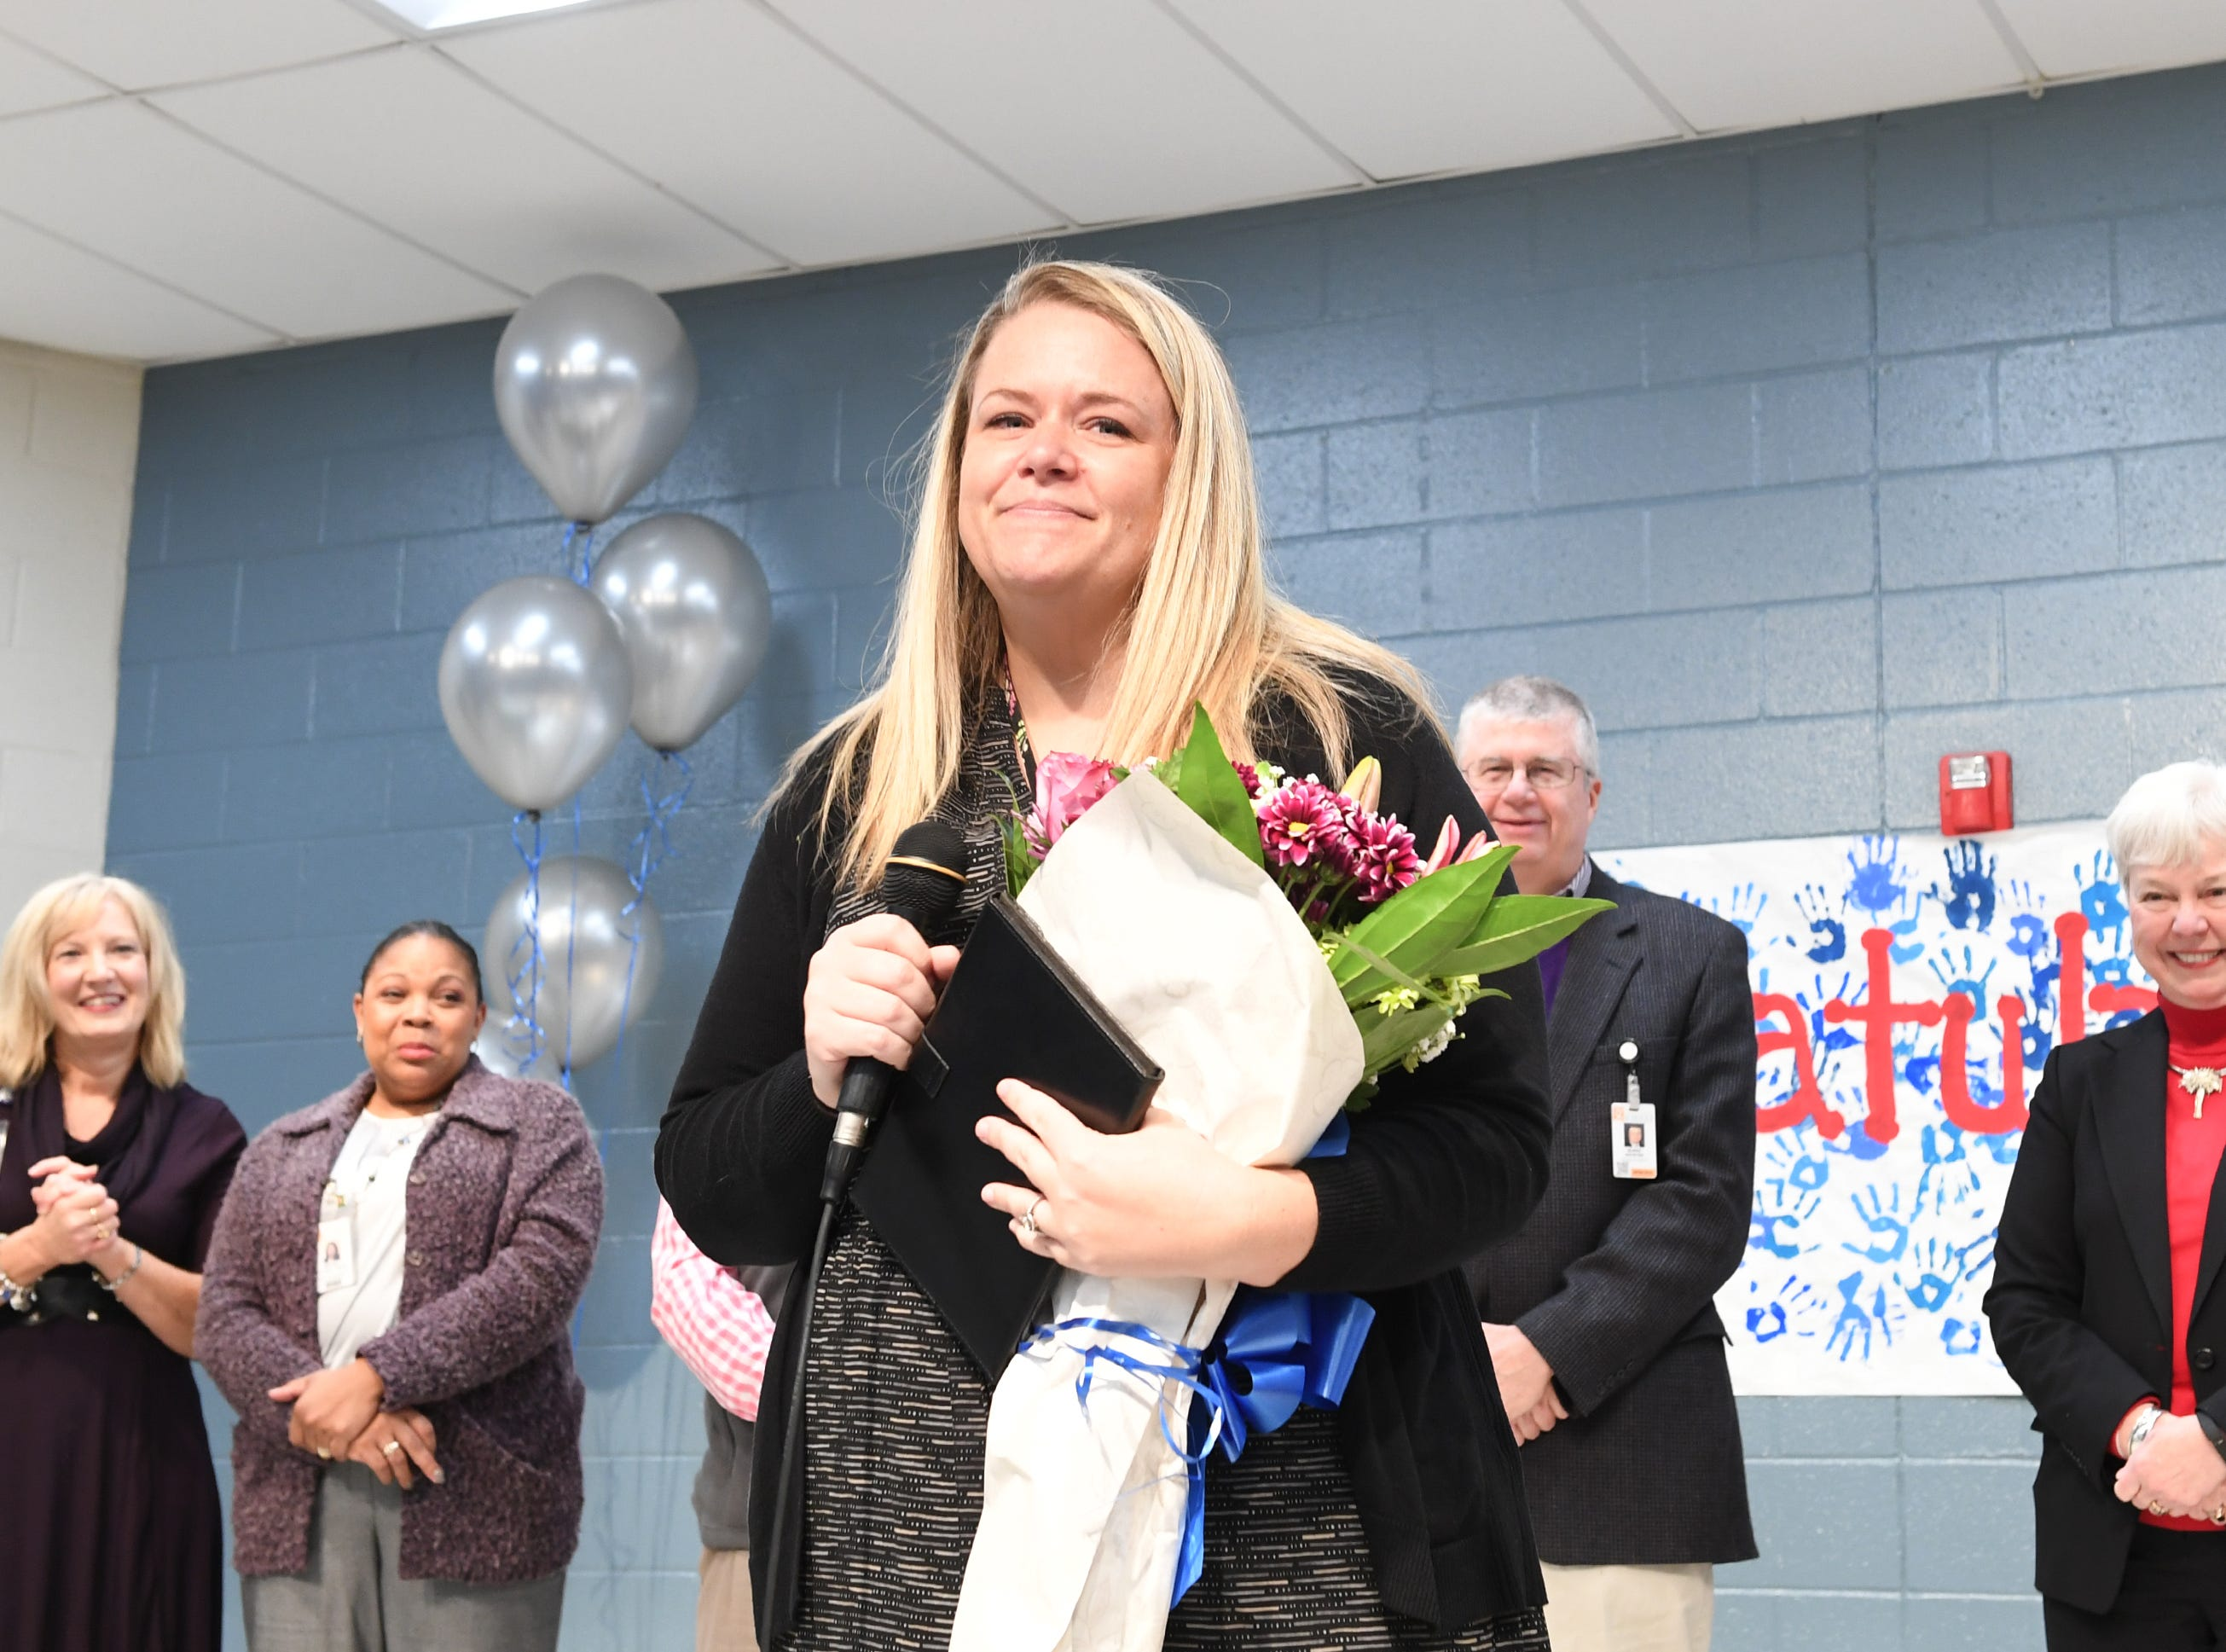 Simpsonville Elementary School Assistant Principal Leah Stafford is named the 2019 SC Elementary Assistant Principal of the Year, Friday, Nov. 30, 2018.